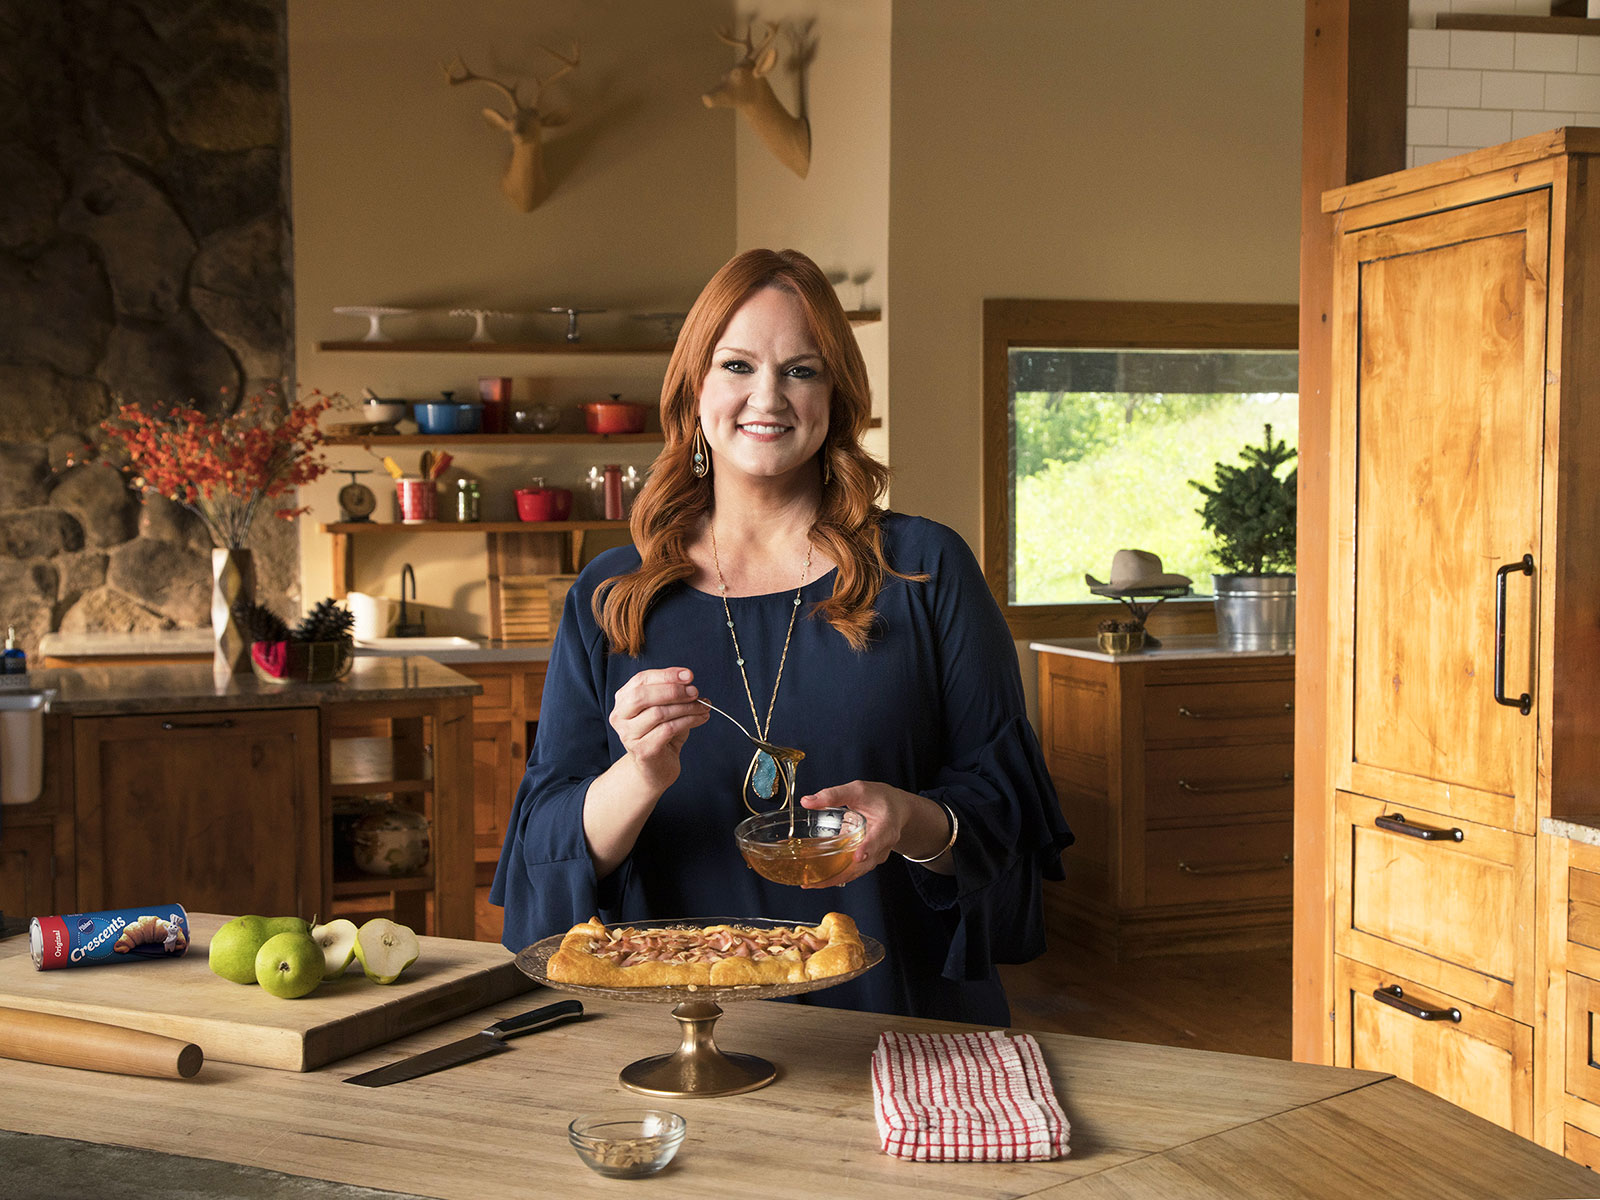 Ree Drummond on Baking Must-Haves, Saving Time in the Kitchen, and the Pillsbury Bake-Off